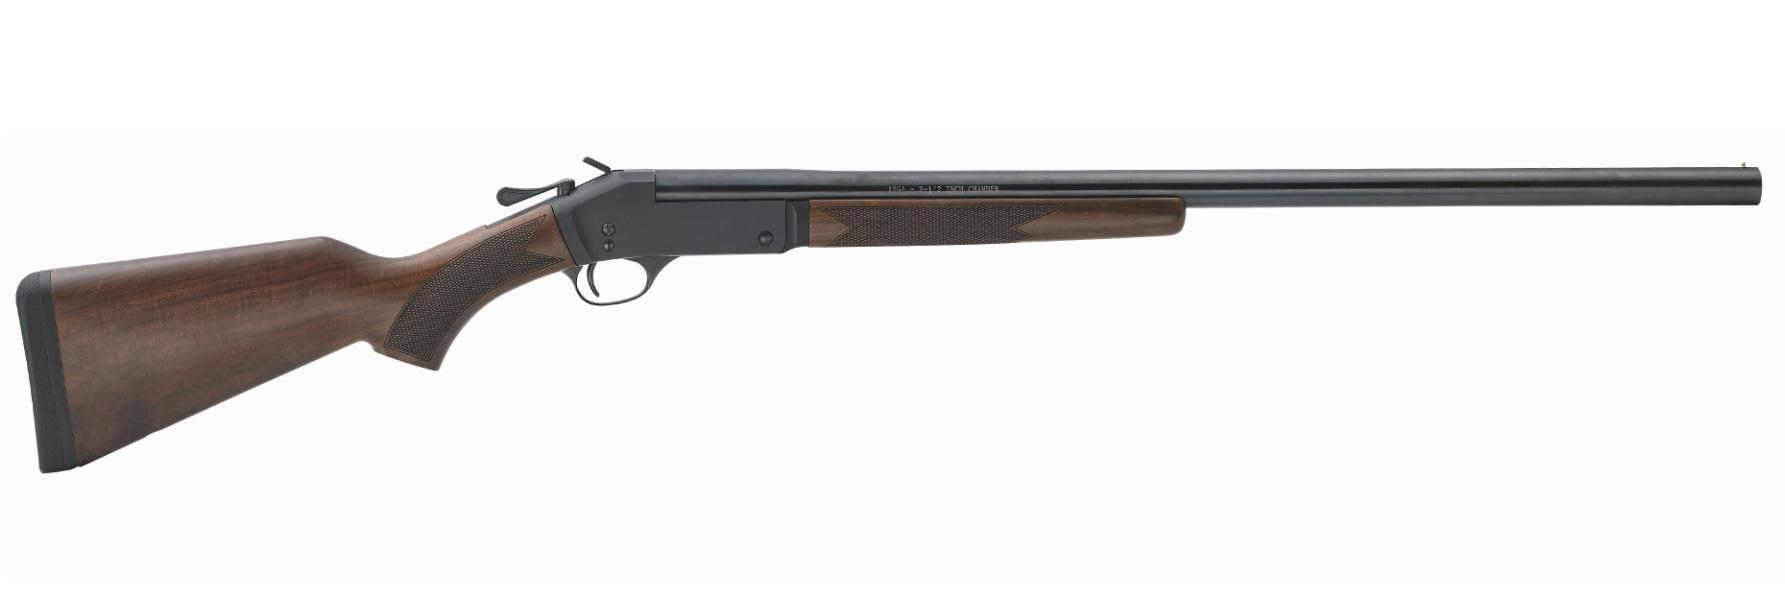 Henry Repeating Arms  Single Shot Shotgun-img-7